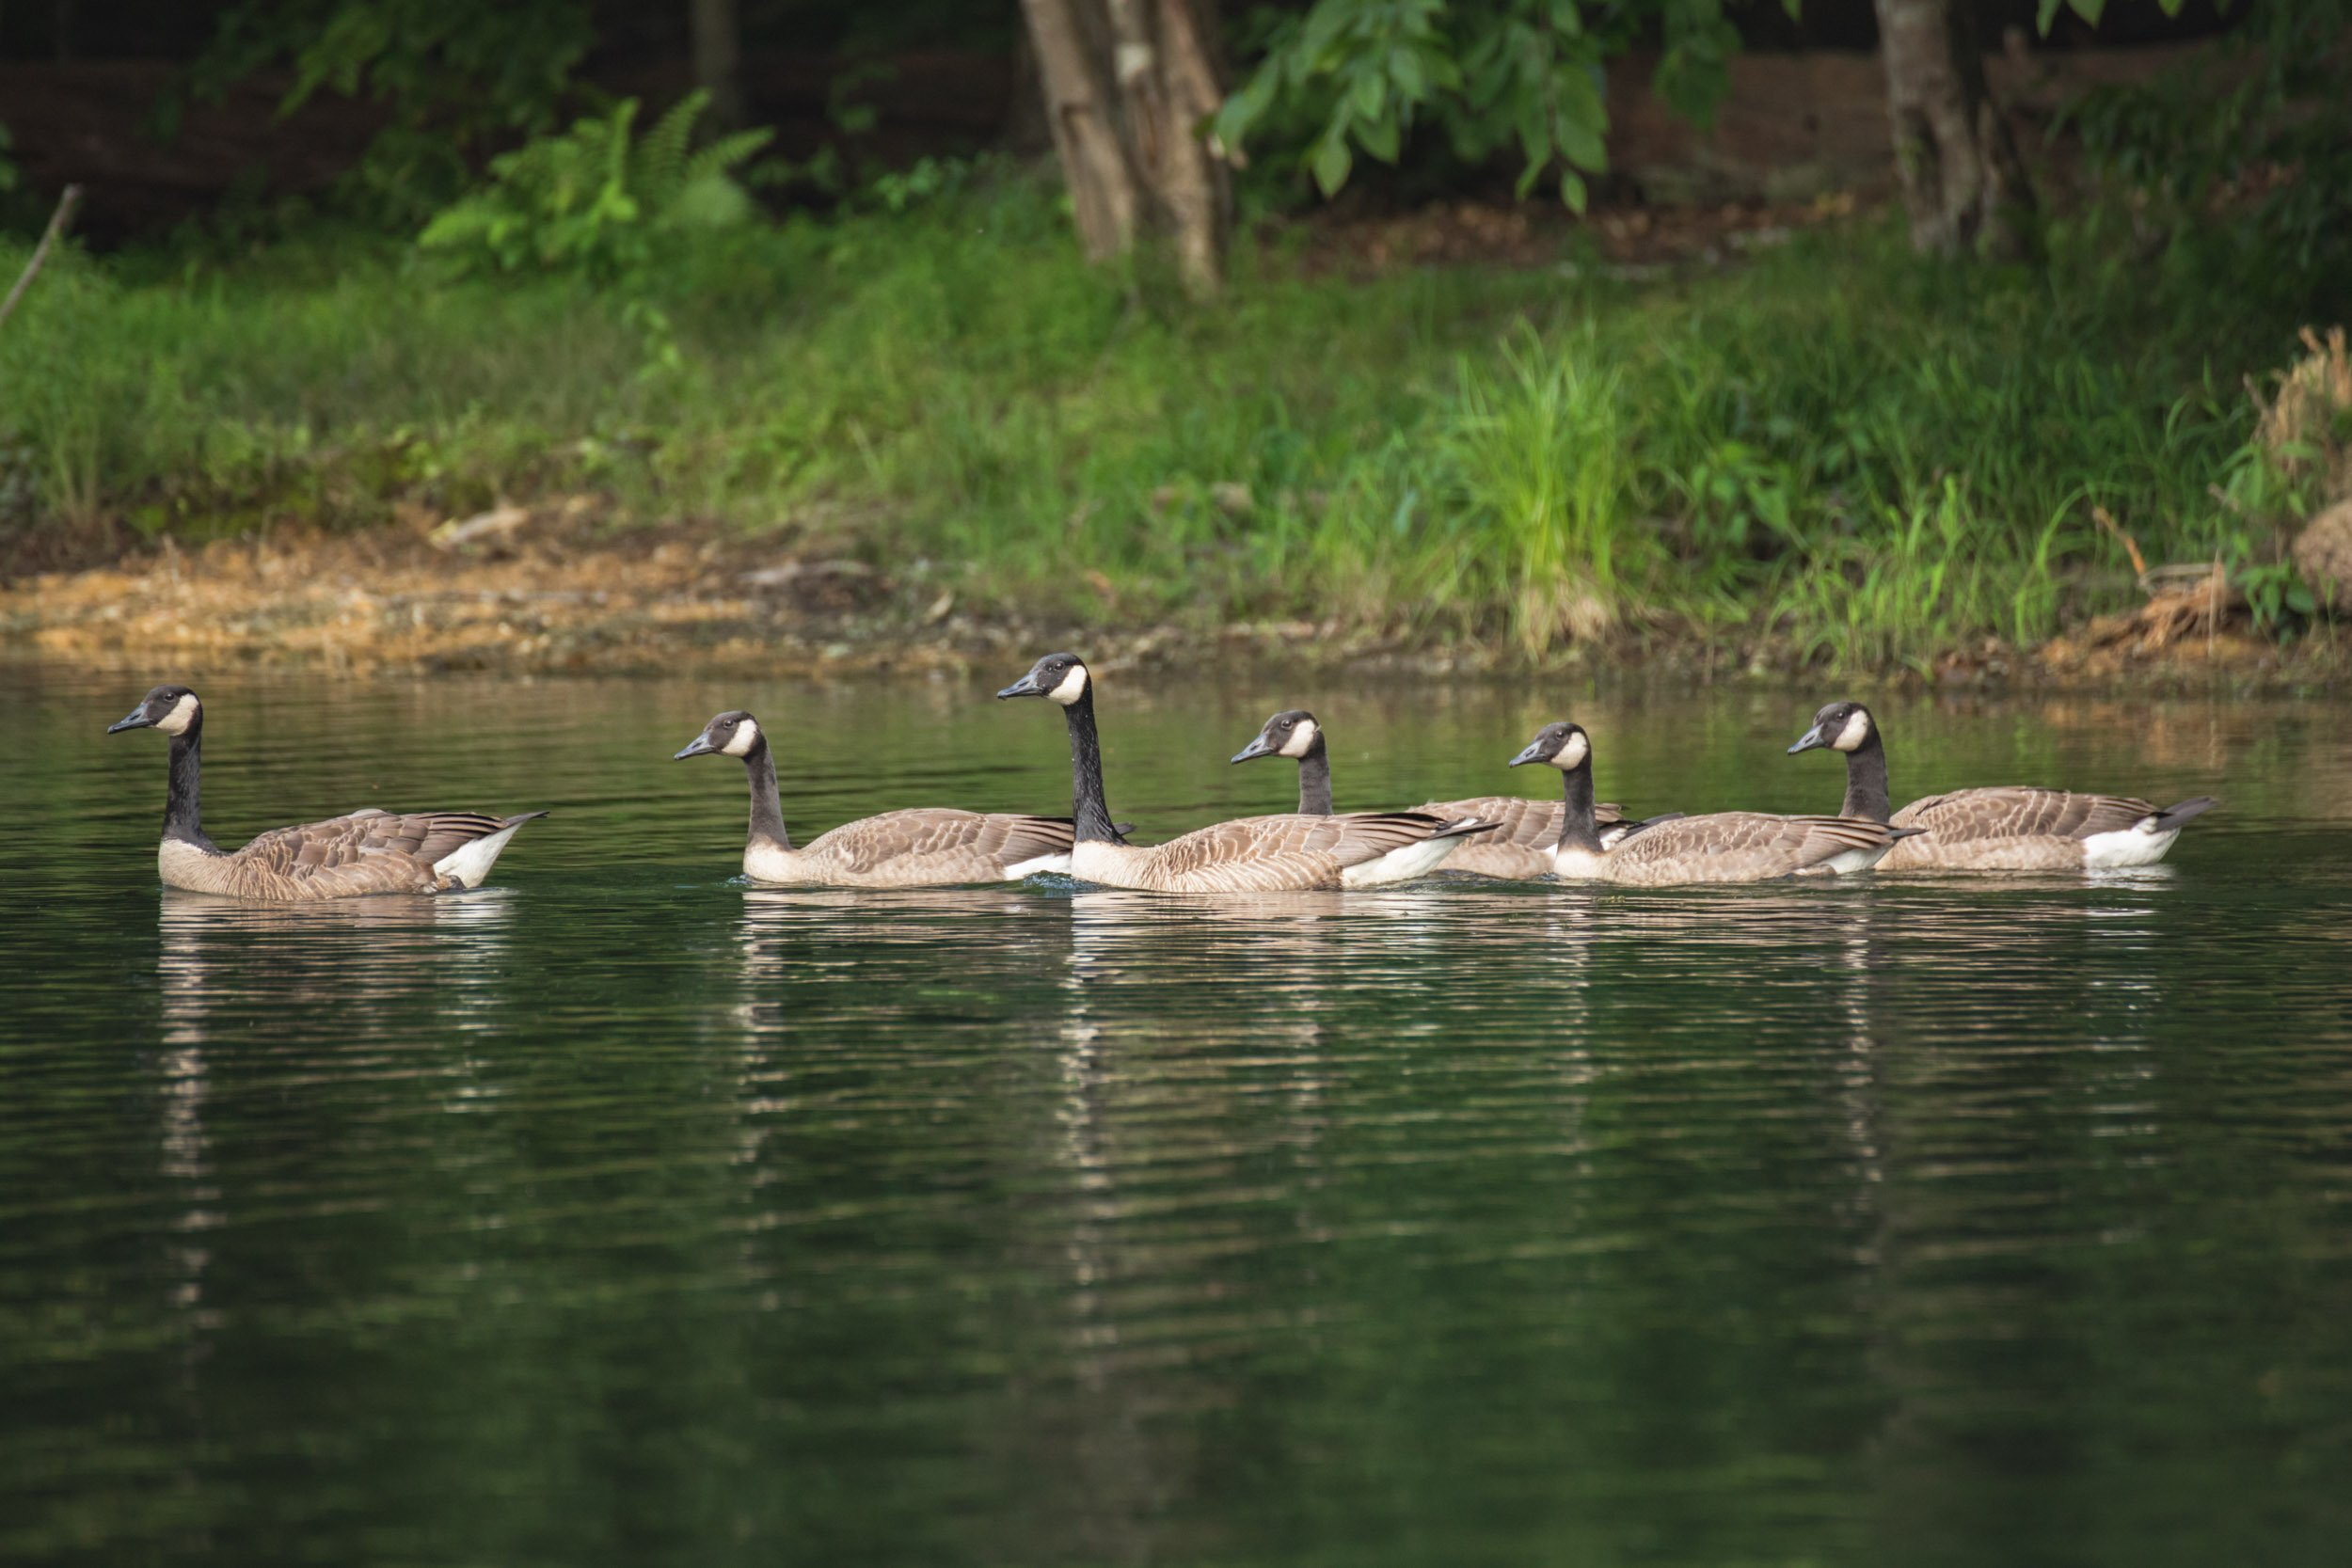 Geese at Cunningham Falls State Park